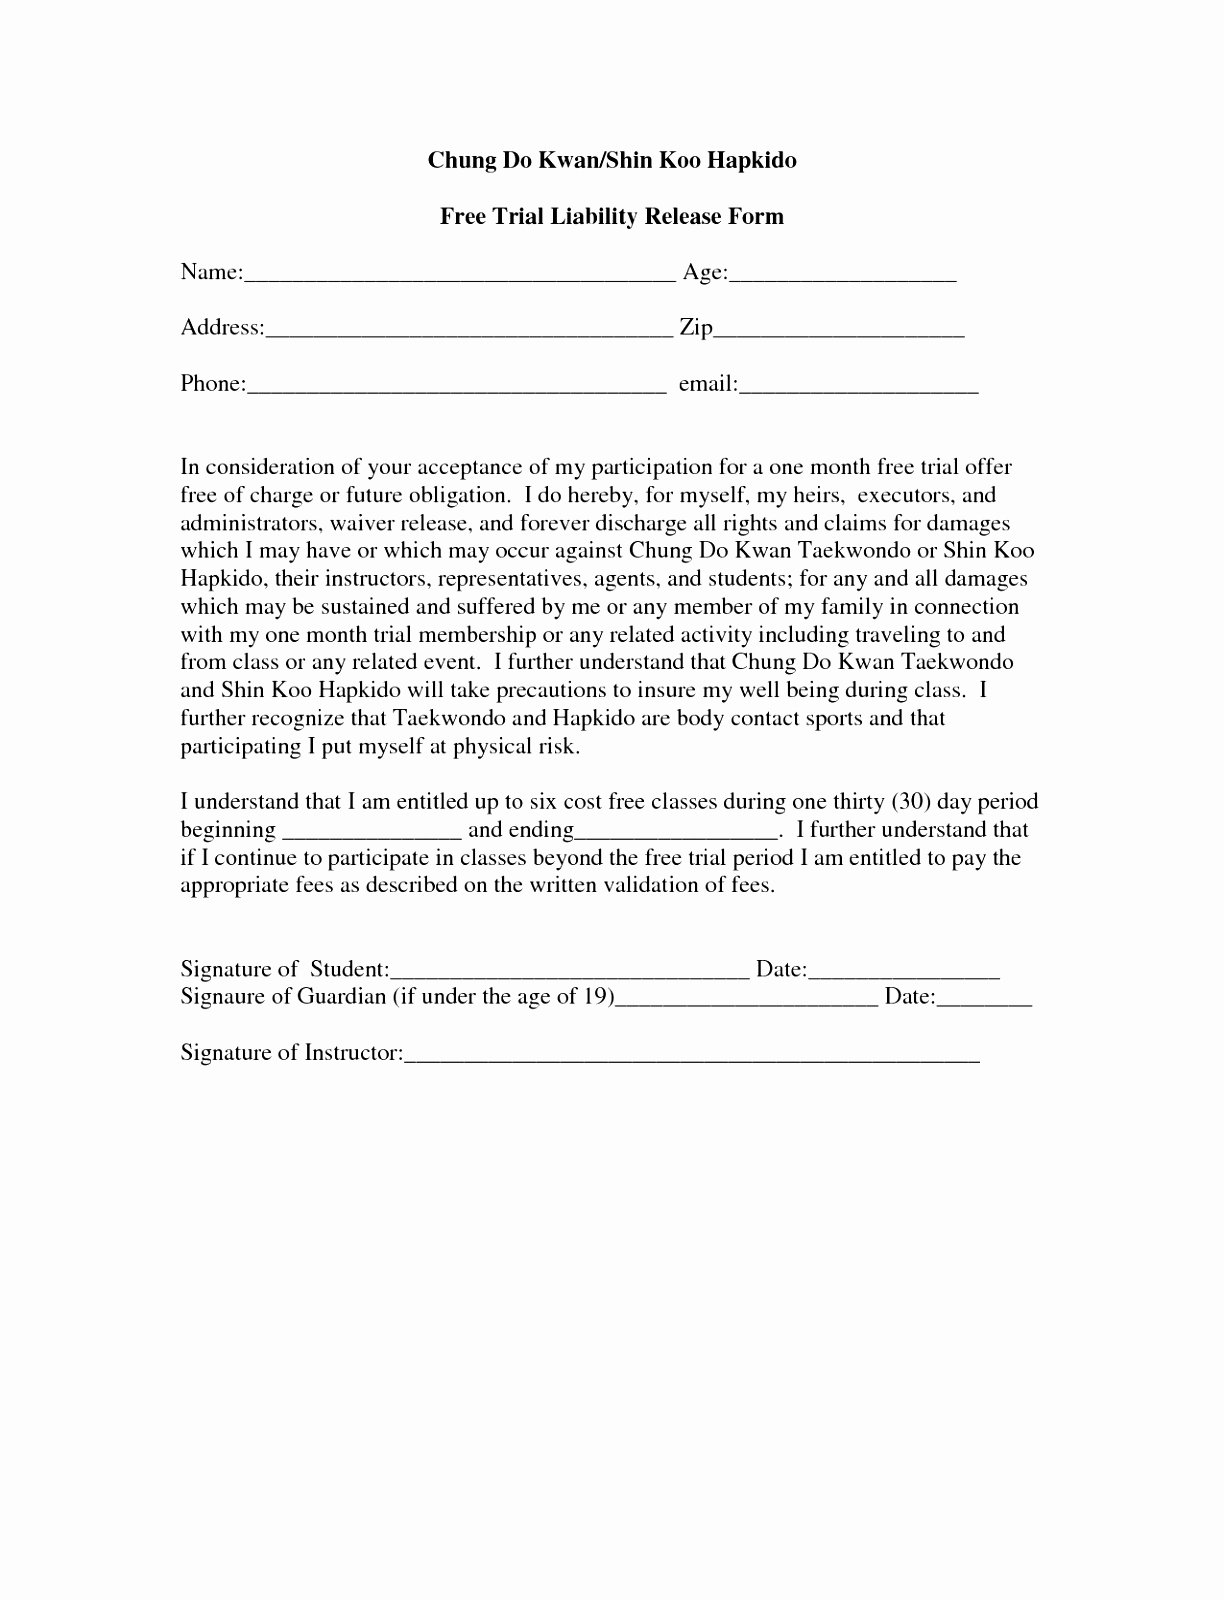 Liability Waiver form Template Free Best Of 6 Fitness Waiver and Release form Template Ueeur